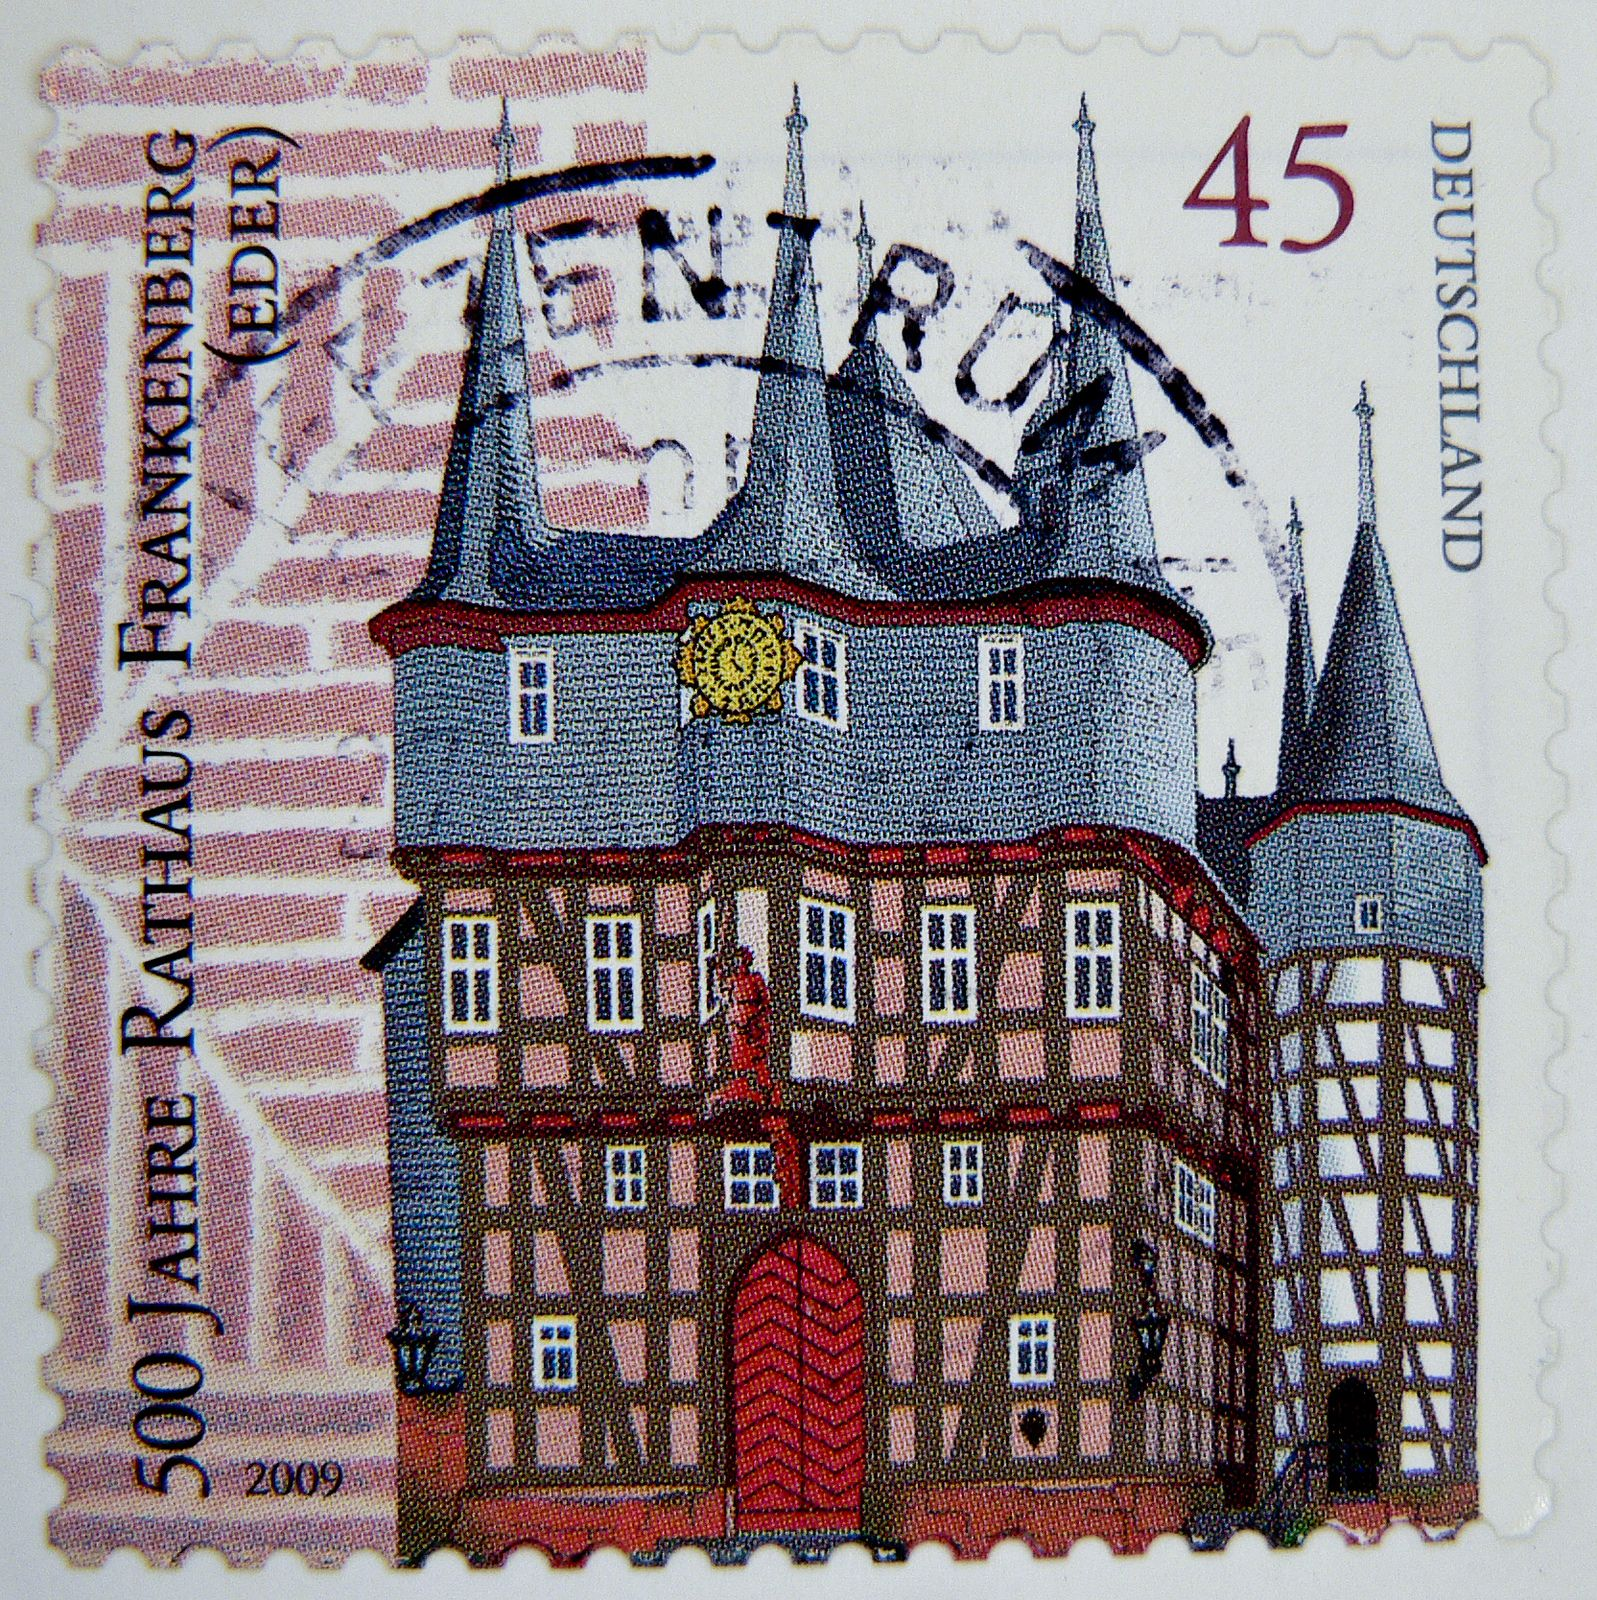 great stamp Germany 45c 500th anniversary of City Hall Frankenberg (Fachwerk, timber framing, Maison à colombages) postes timbre allemagne sello alemania selo alemanha 德意志 Déyìzhì Германия スタンプ ドイツの ヨーロッパ postzegels duitsland franco porto bolli 45